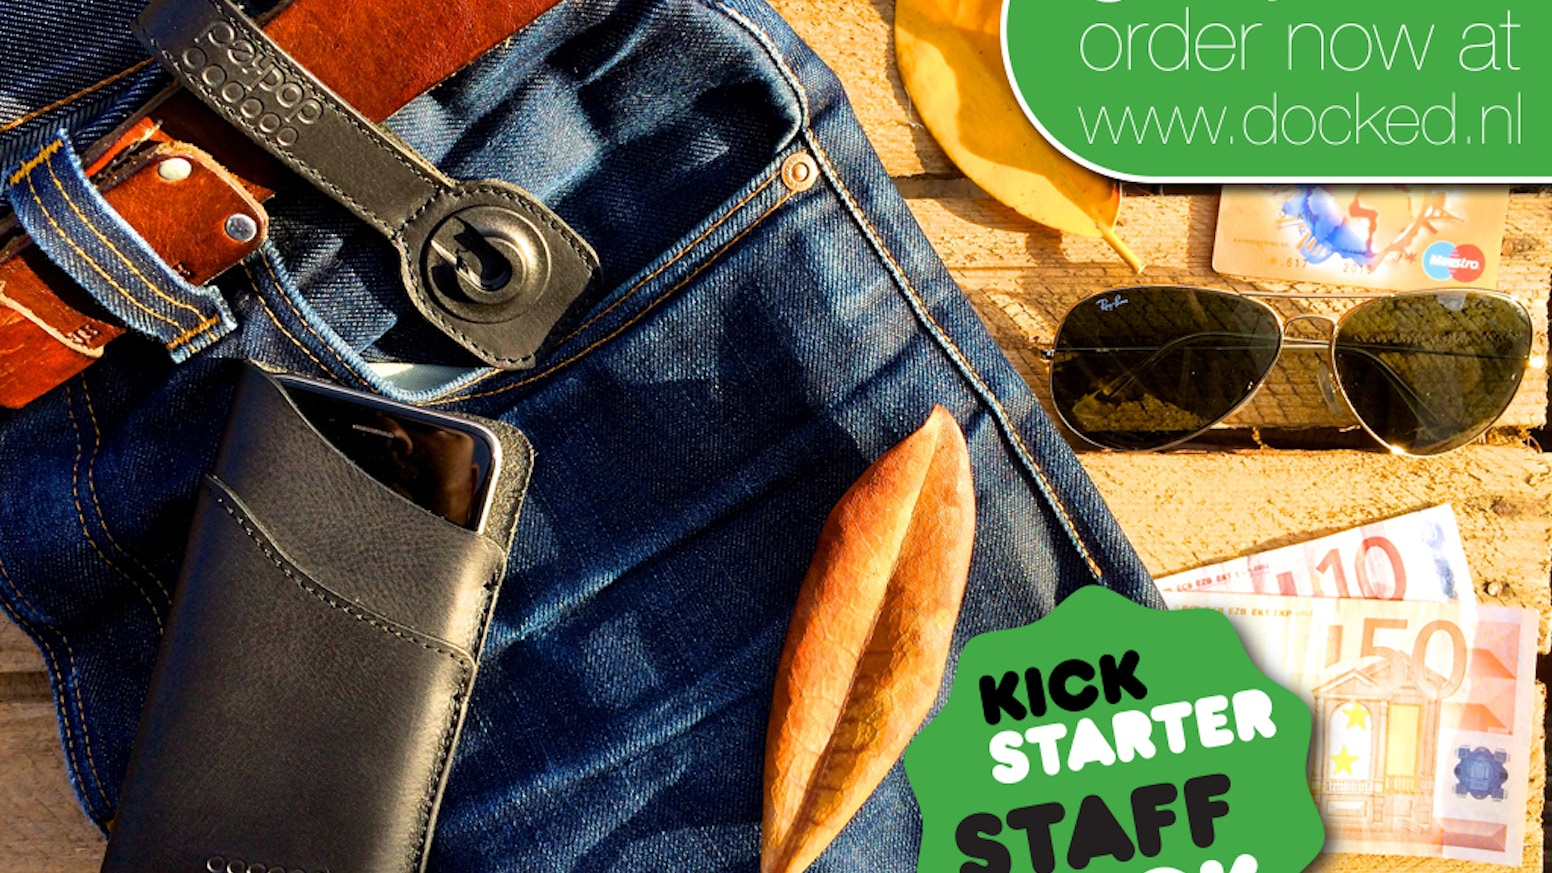 Reinventing the iPhone sleeve! Don't hide it in your pocket, just wear it! With a revolutionary magnetic anti-theft system.